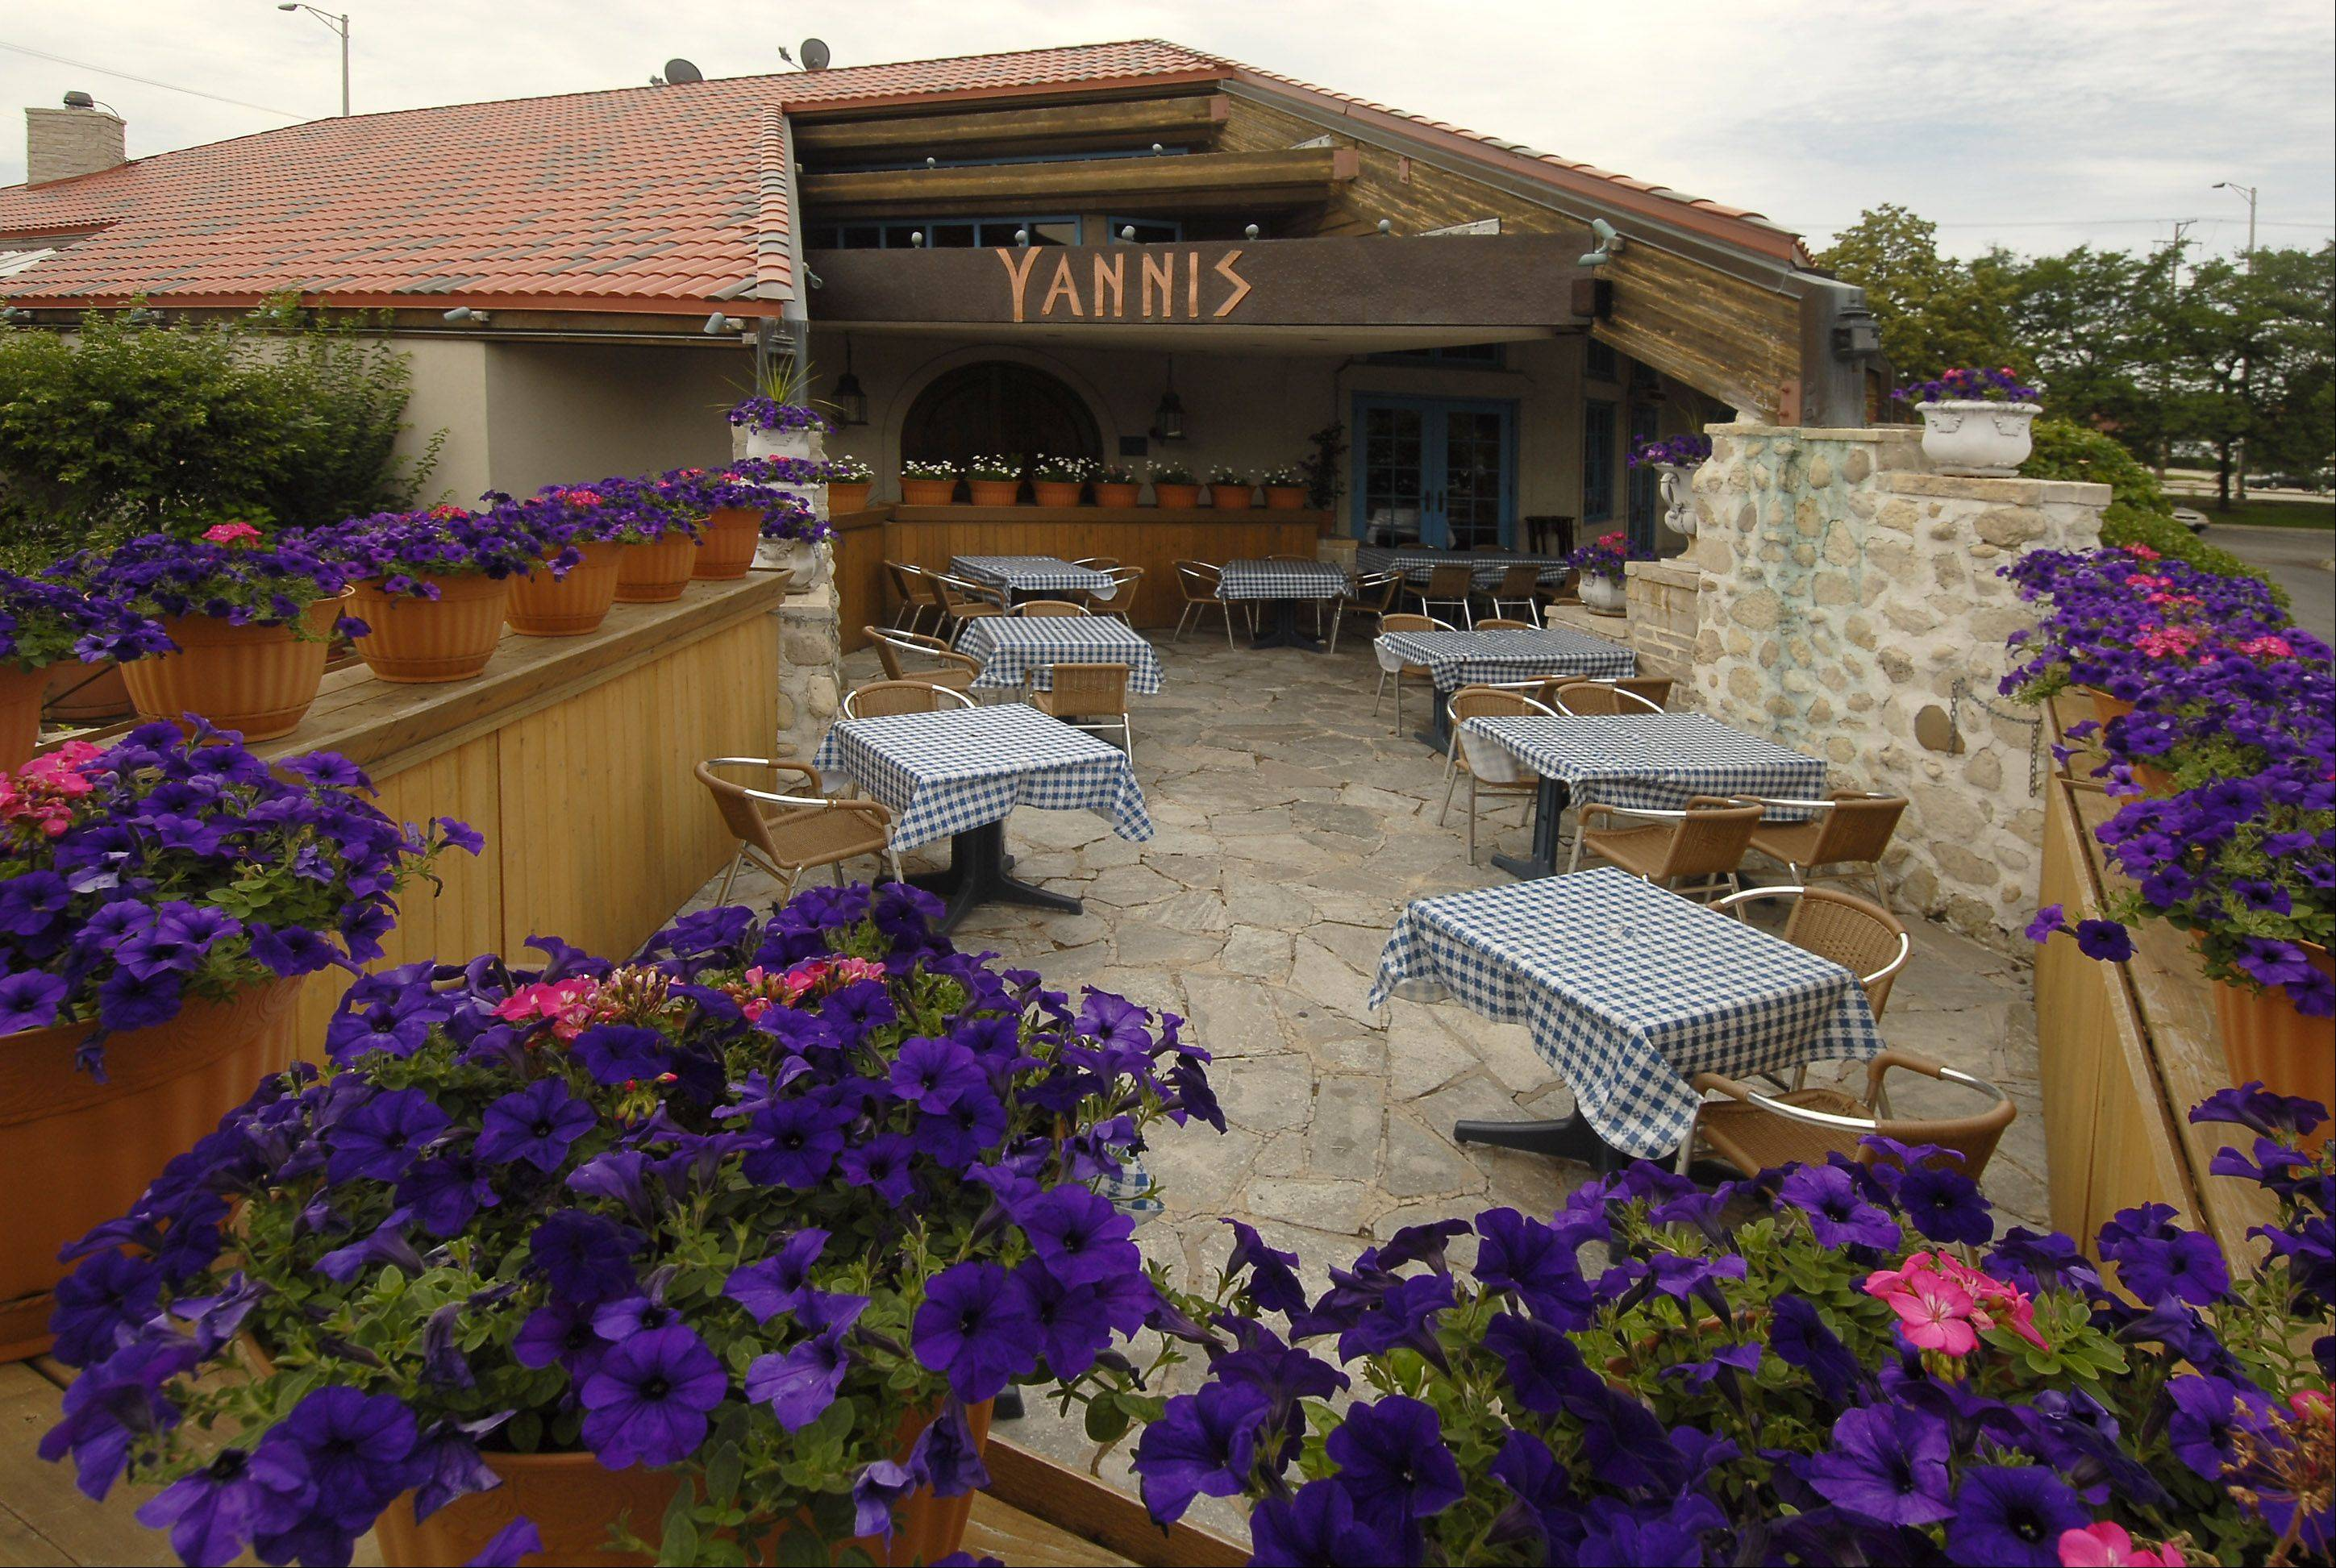 Yanni's Greek restaurant closes in Arlington Heights